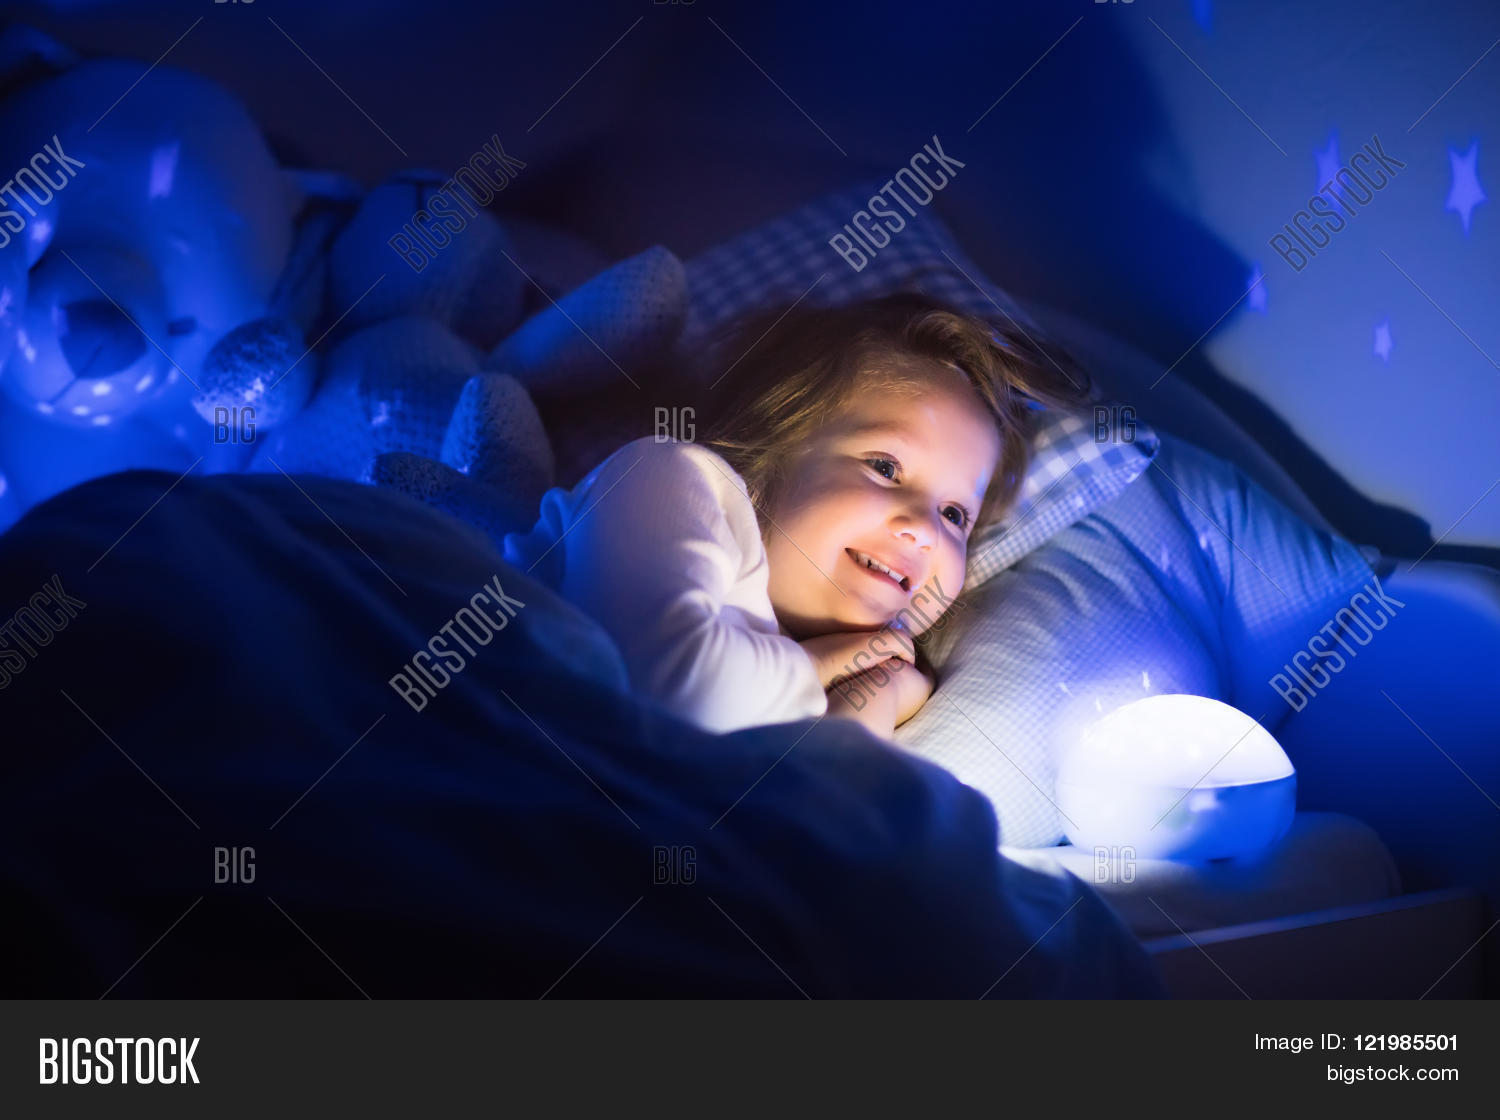 Little Girl Reading Book Bed. Dark Image  for Little Girl With Lamp  54lyp